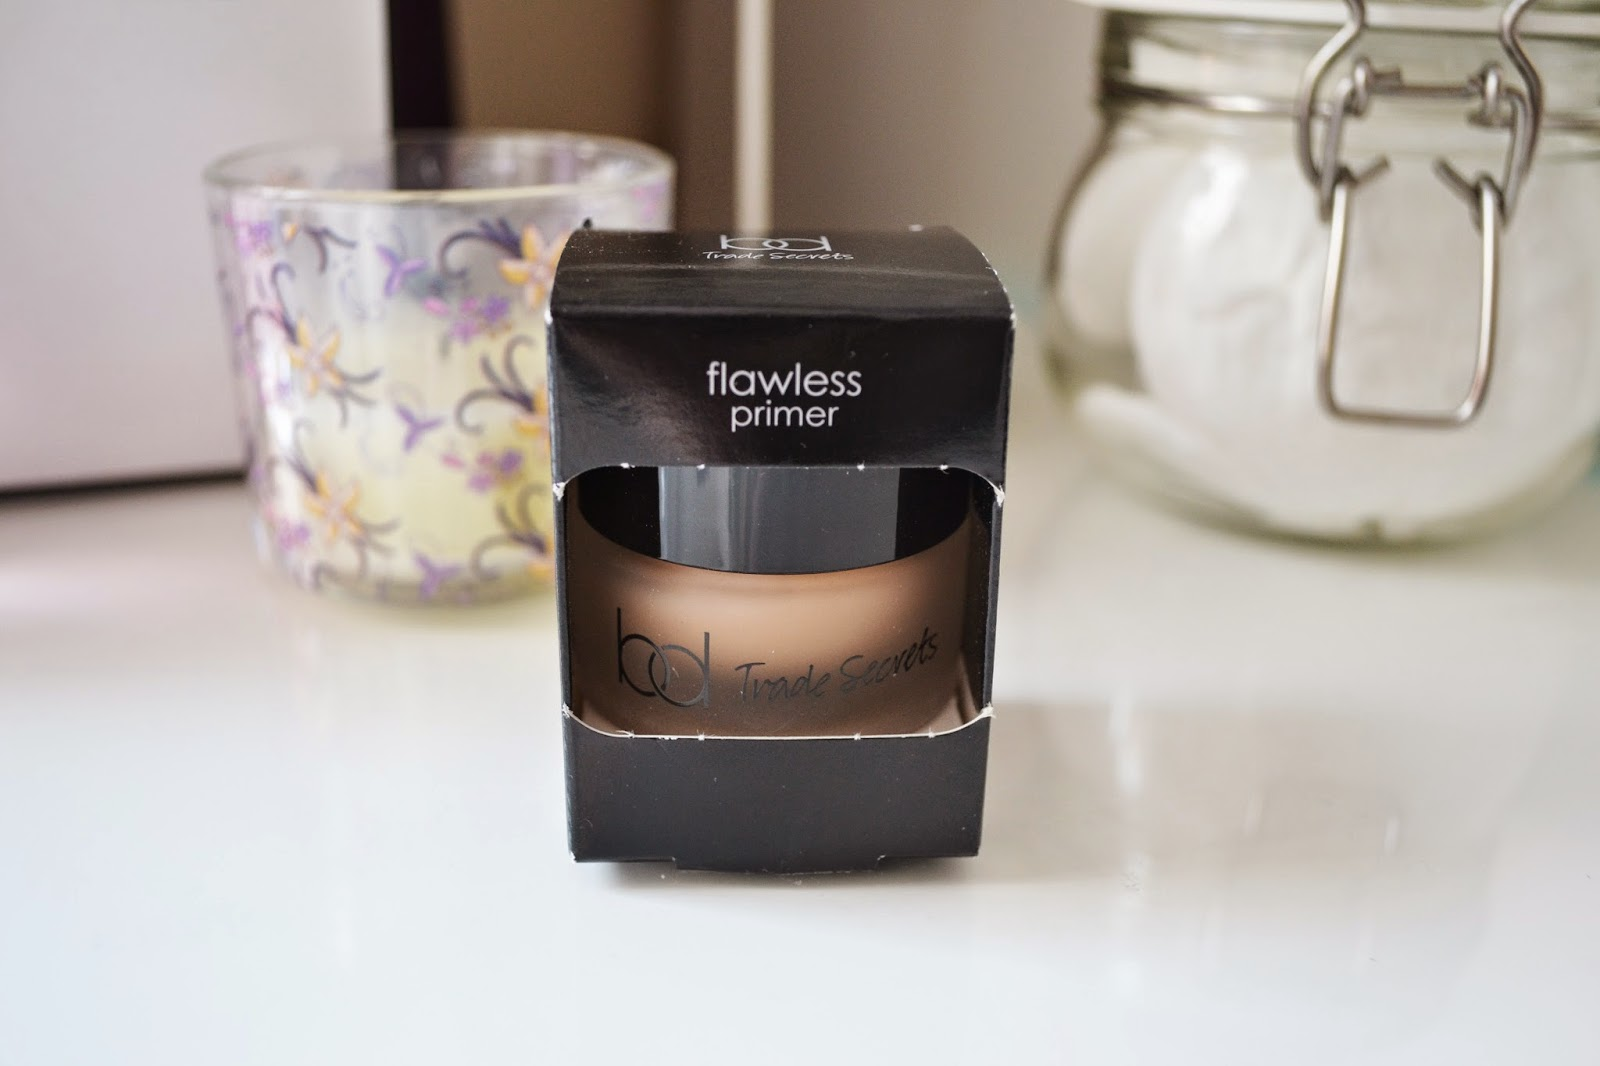 BD Trade Secrets Tesco Flawless Primer Review